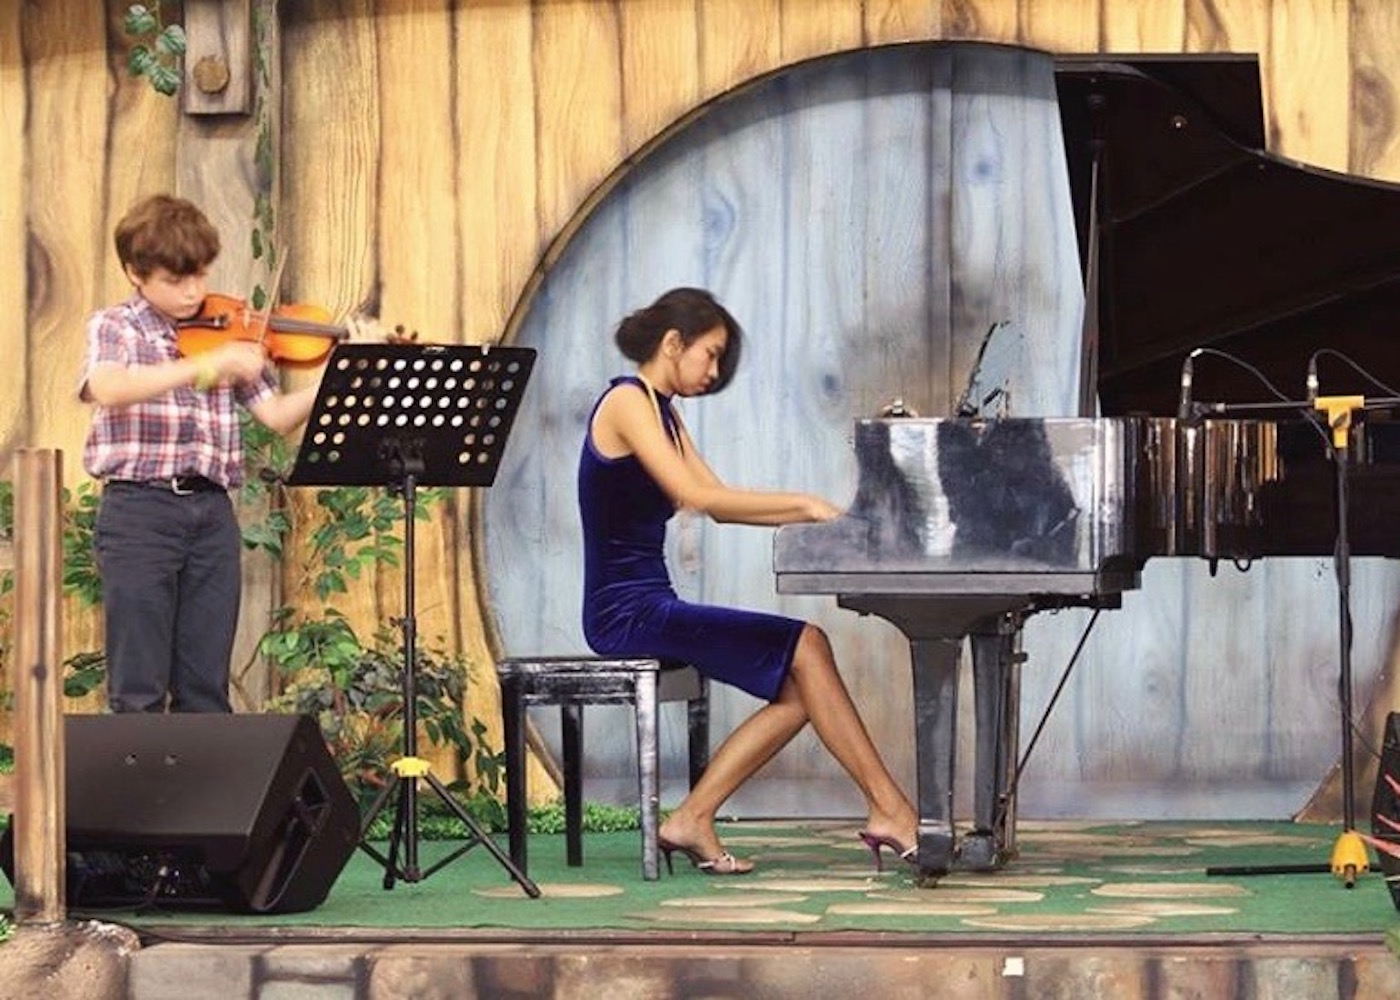 Looking for music lessons in Bali? Meet Ensiklomusika Music School – a musical education studio for kids & adults